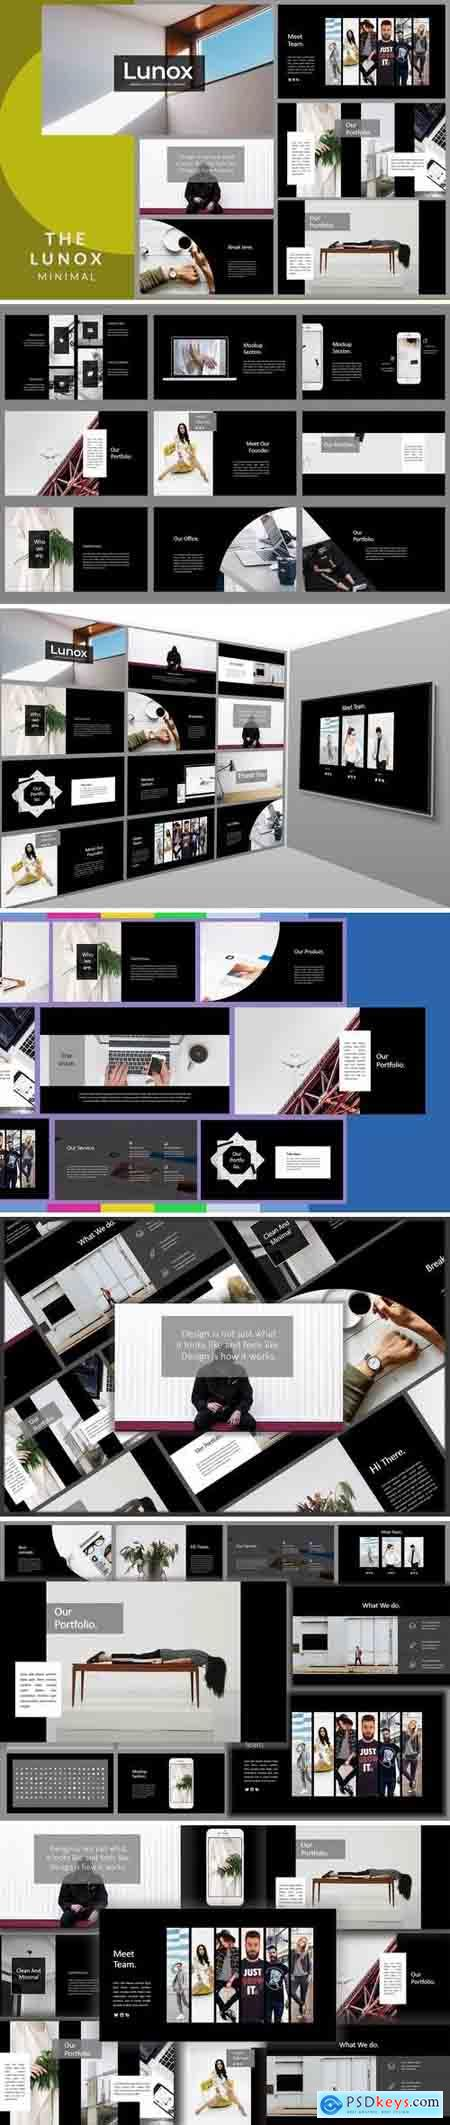 Lunox Dark - Powerpoint, Keynote, Google Sliders Templates